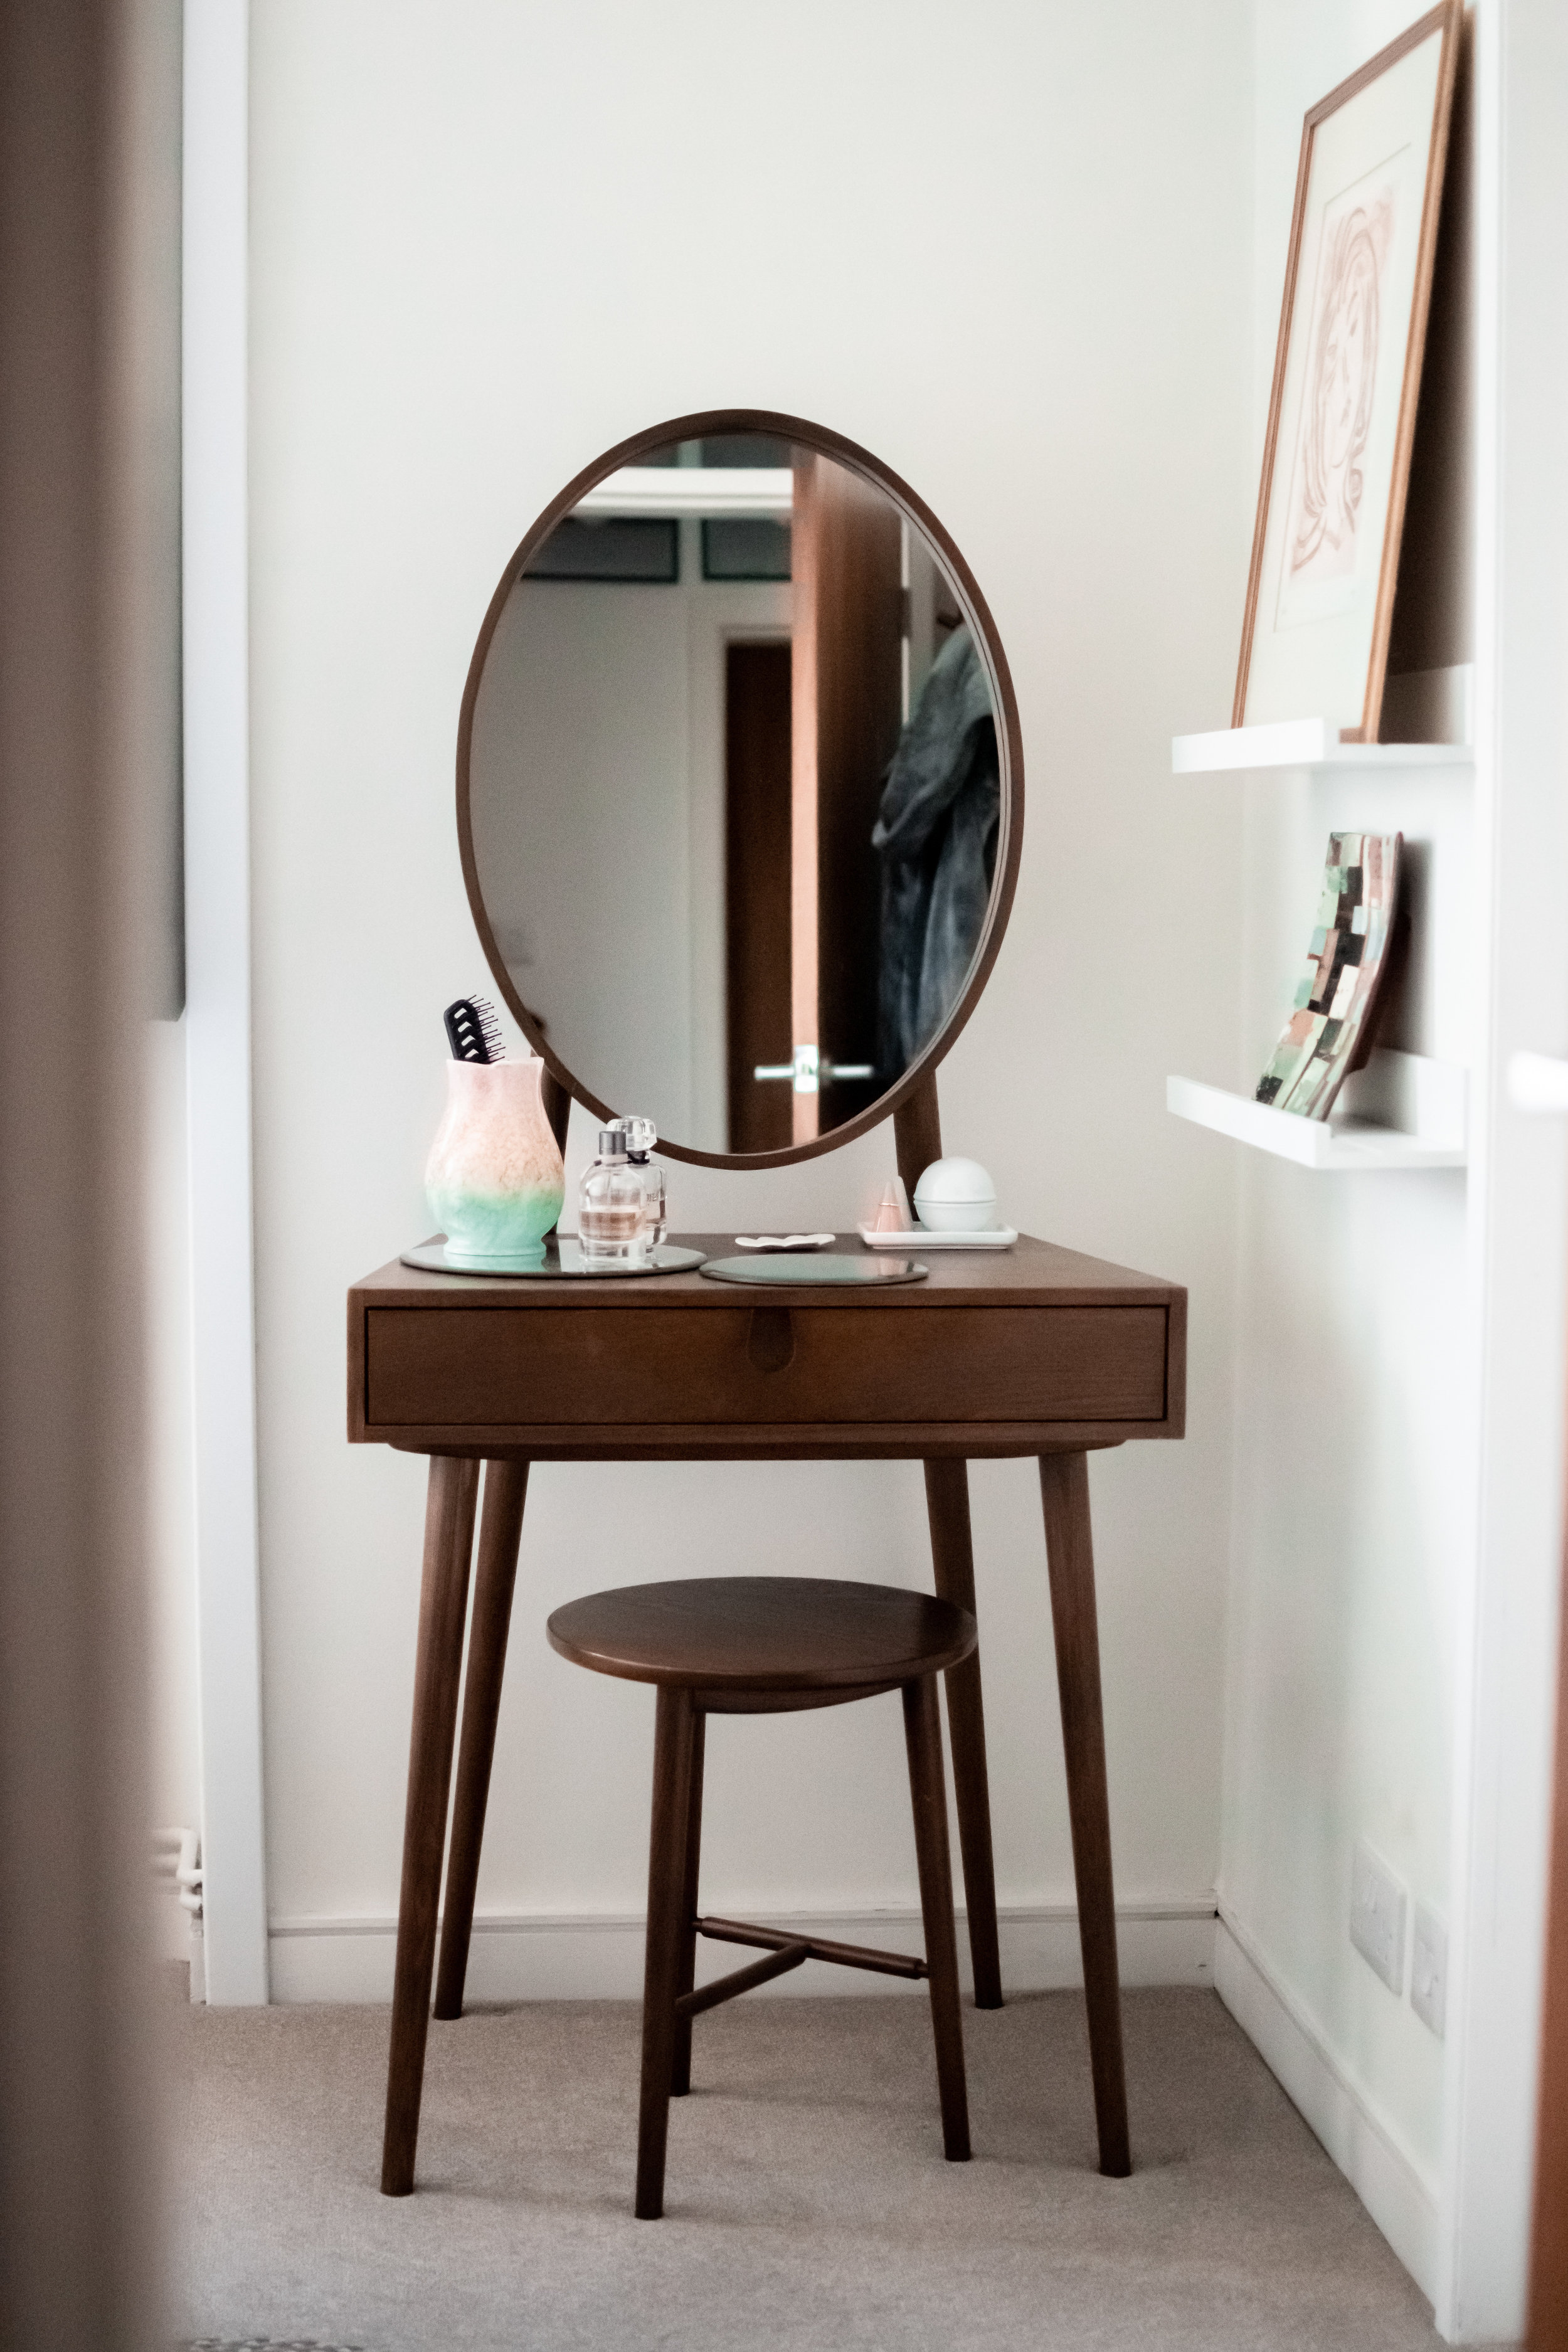 Dressing table in mid-century style